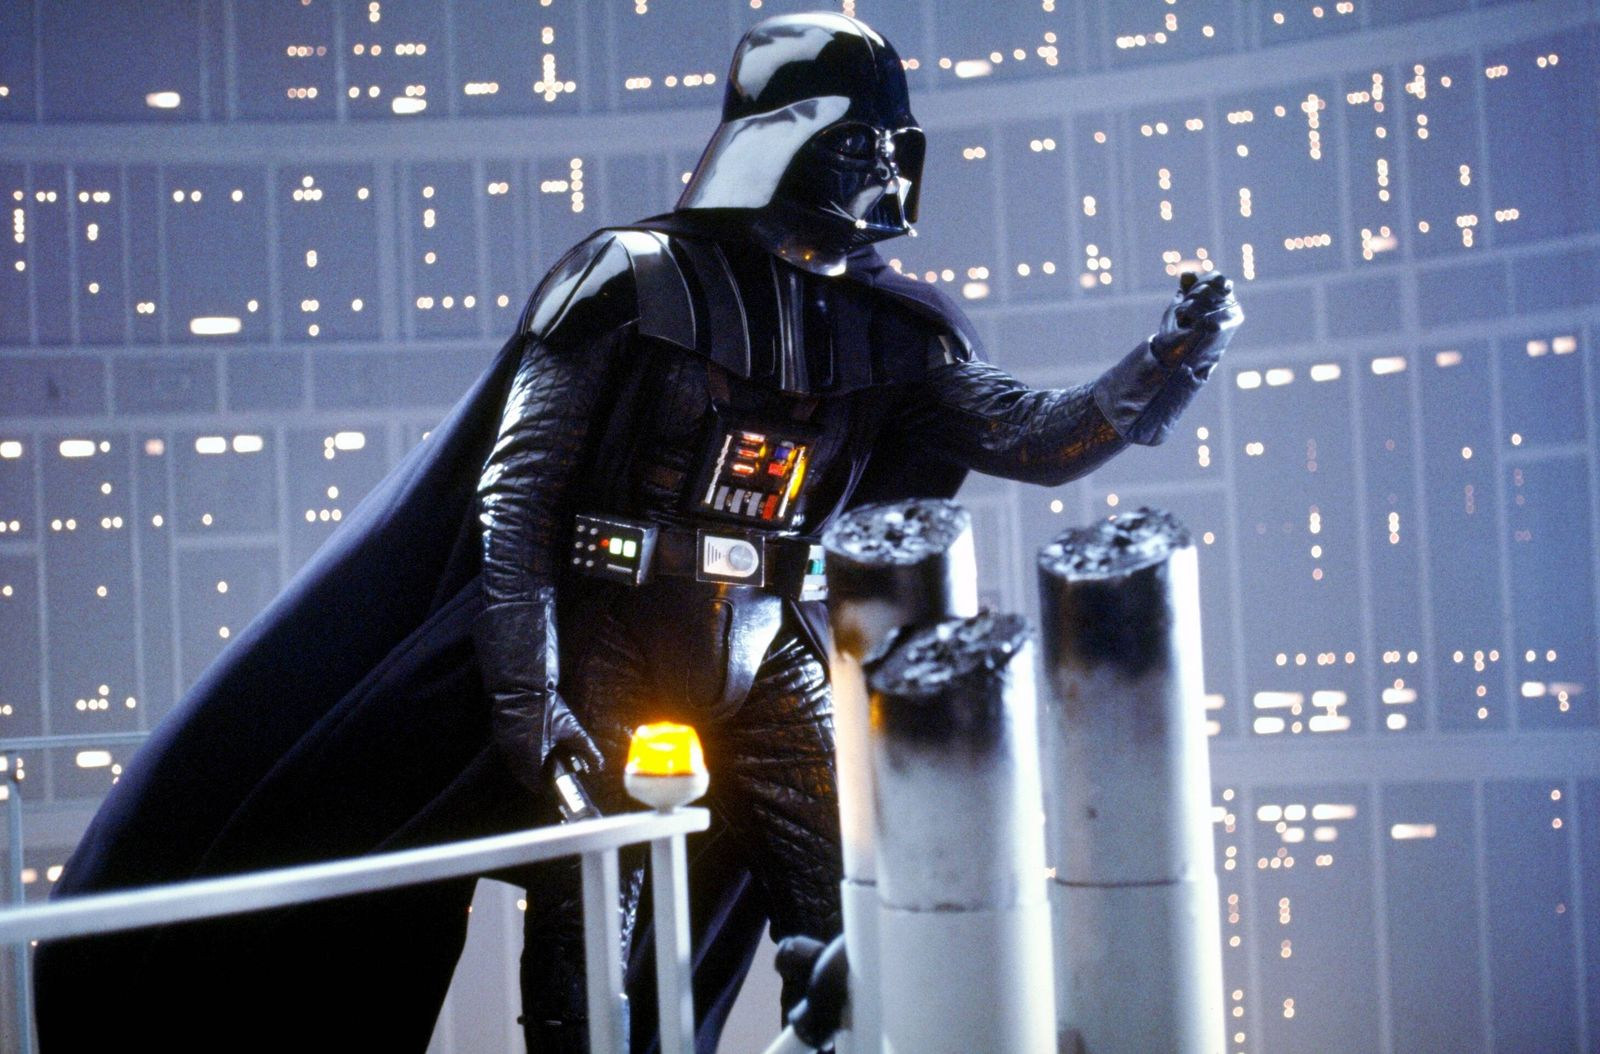 David Prowse Characters: Darth Vader Film: Star Wars: Episode V - The Empire Strikes Back (USA 1980) / Neuer Titel Auch: